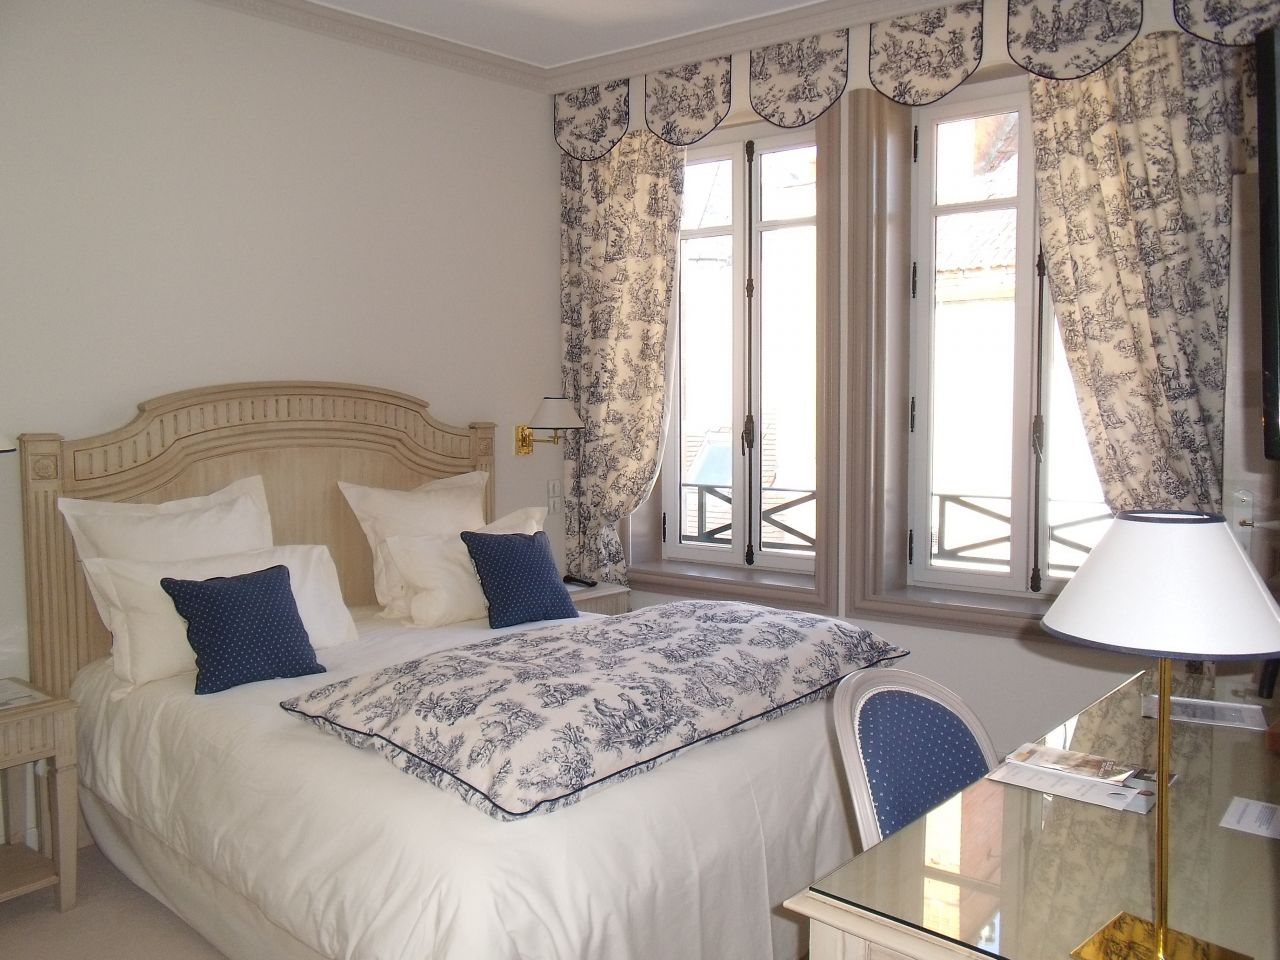 H tel de charme for Hotel de charme paris